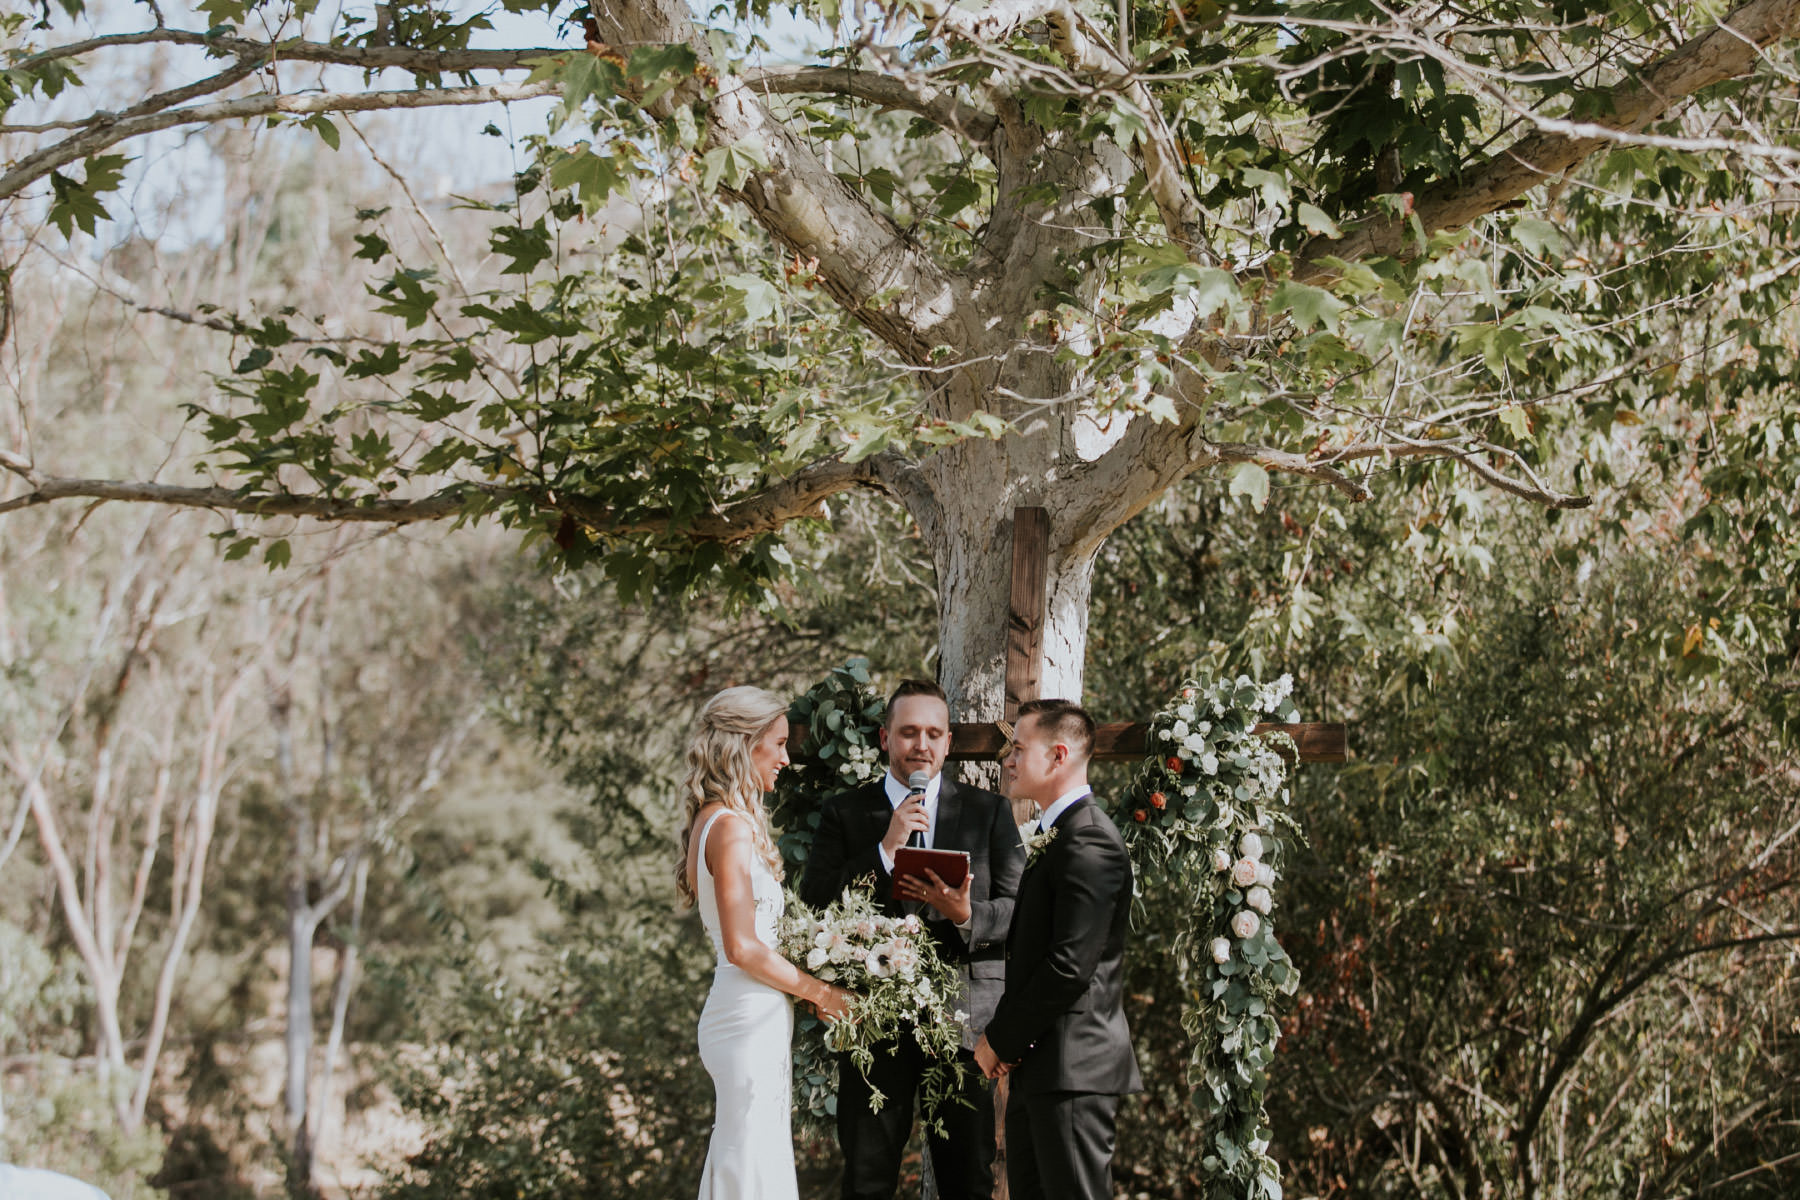 Bride and groom getting married under a tree in Rancho Santa Fe